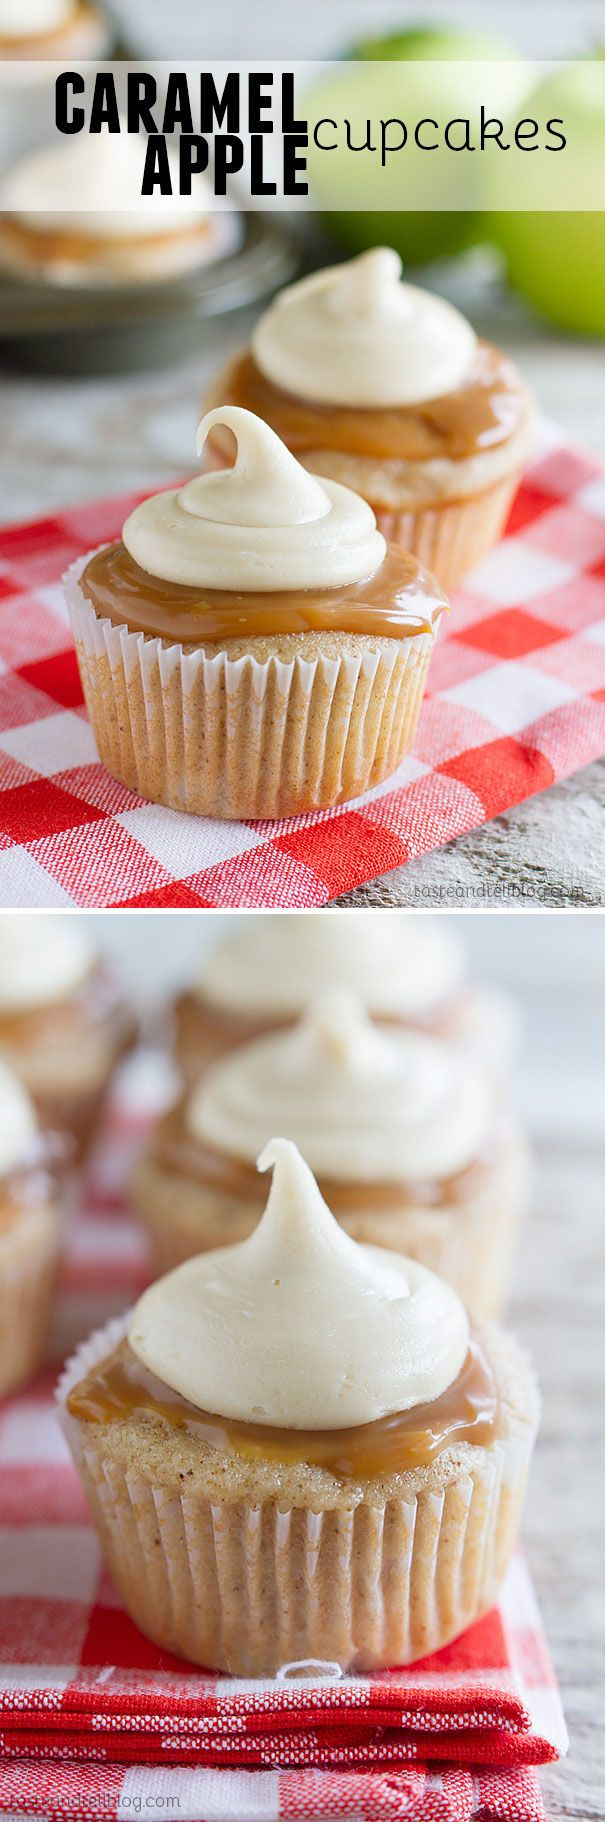 Spiced cupcakes are filled with fresh apples and then topped with caramel sauce and a thick caramel icing in these Caramel Apple Cupcakes that are perfect for fall.: